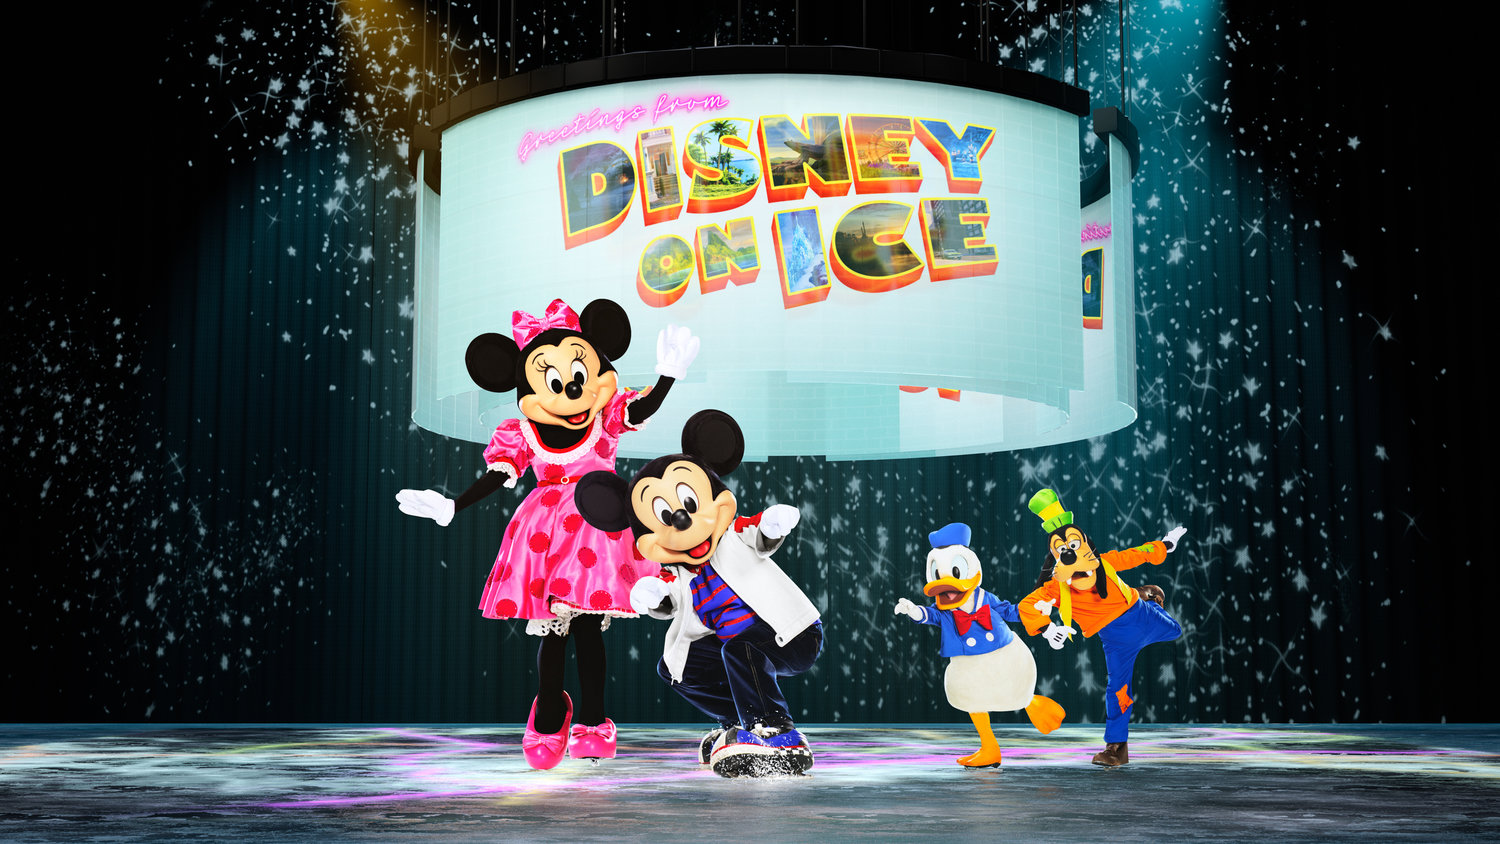 Mickey and his pals greet everyone in the latest Disney on Ice extravaganza.